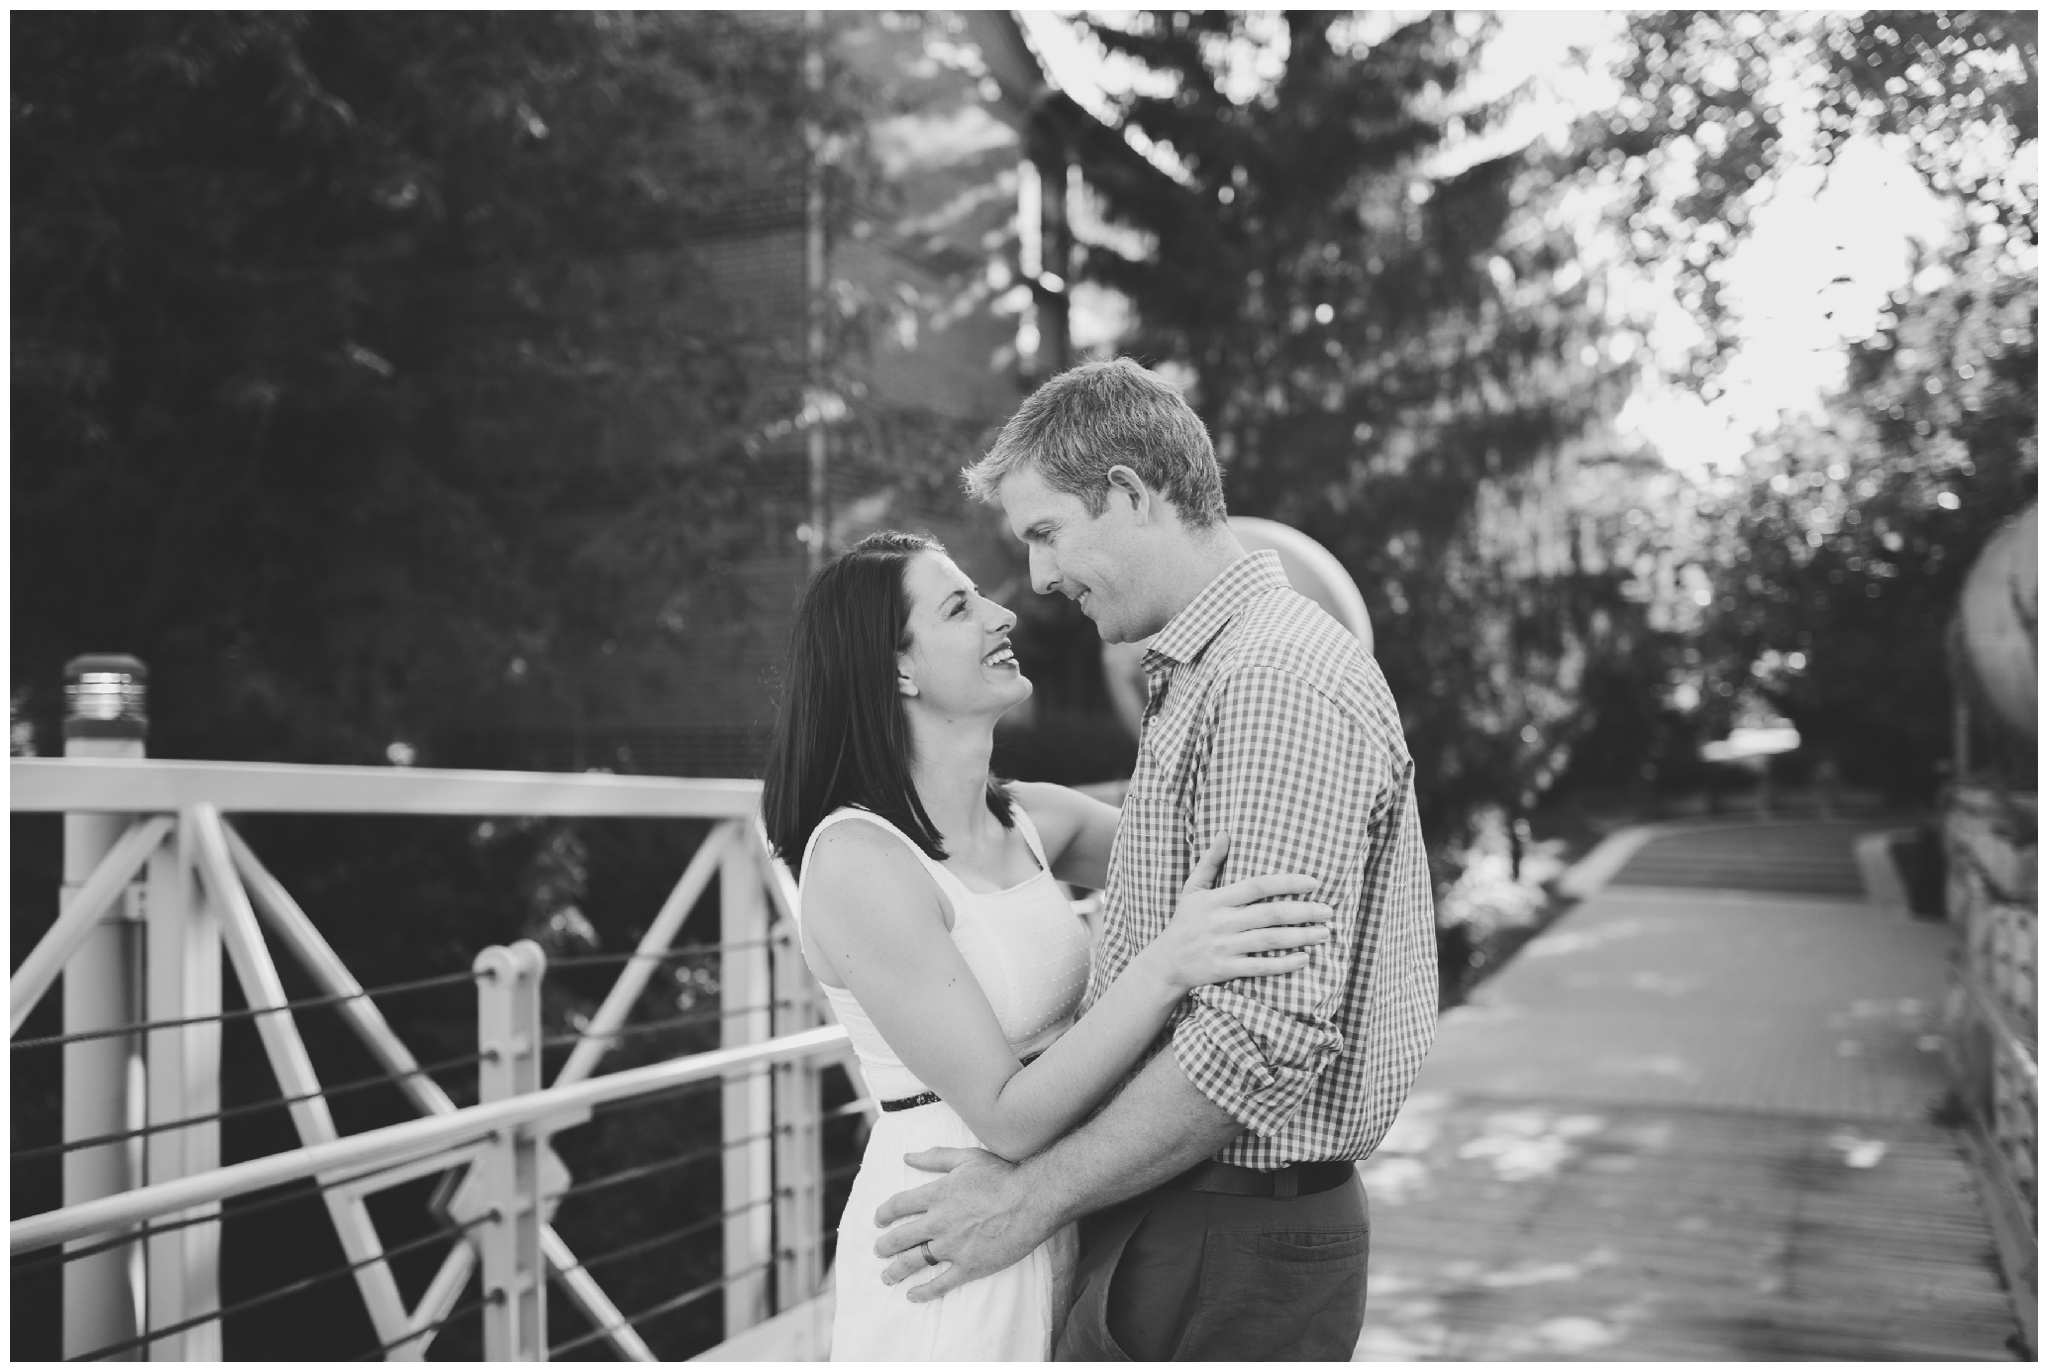 Downtown Indy Canal couples photo session